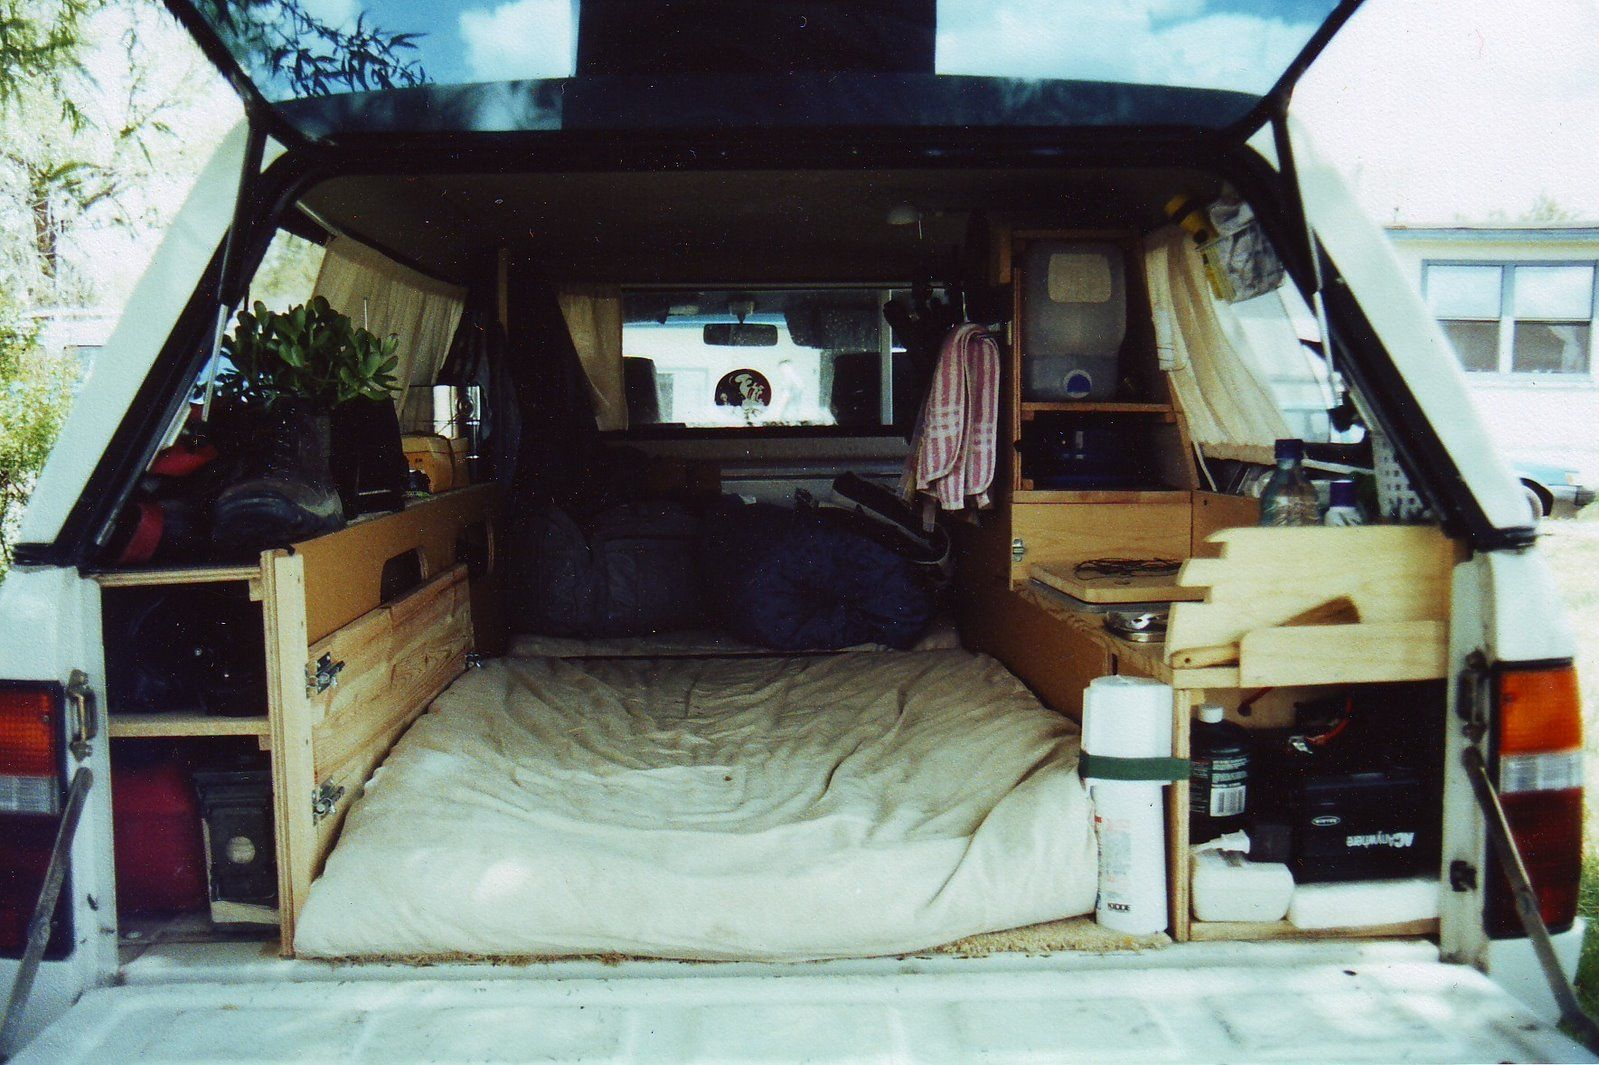 17 Best images about WheelCamp on Pinterest   Buses  Car camper and Campers. 17 Best images about WheelCamp on Pinterest   Buses  Car camper